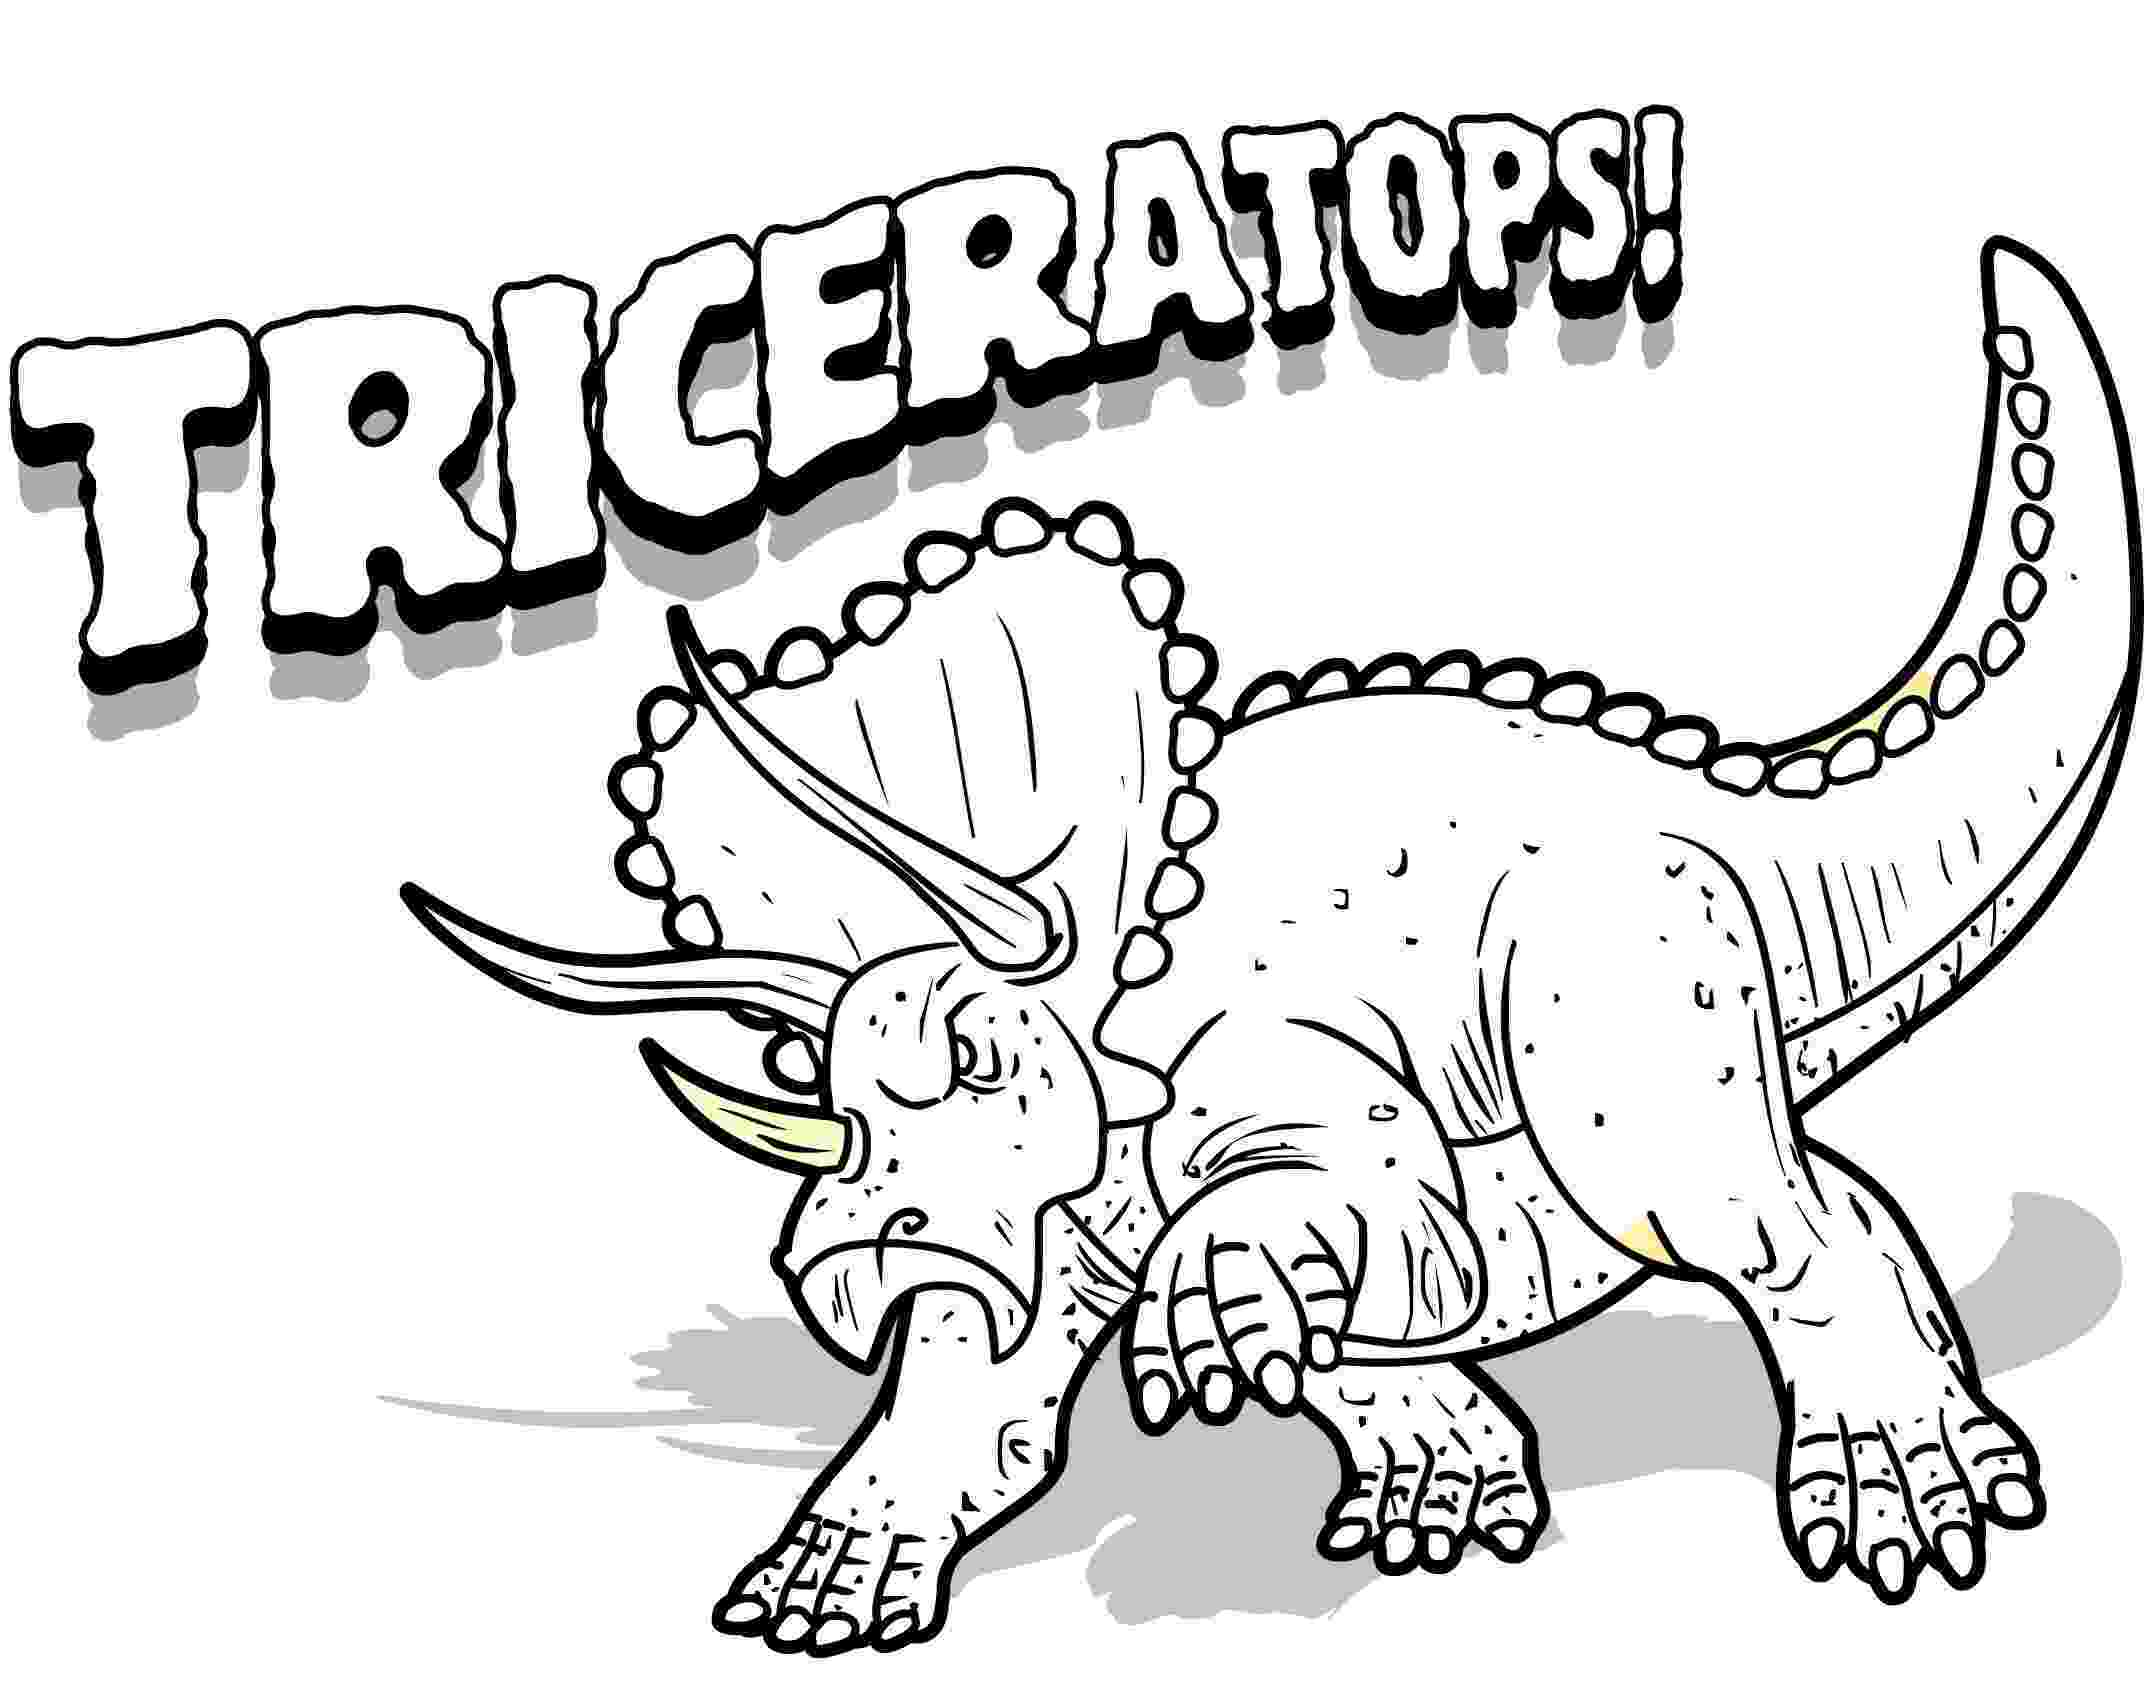 dinosaur coloring pages free printable extinct animals 36 printable dinosaur coloring pages dinosaur pages free printable coloring